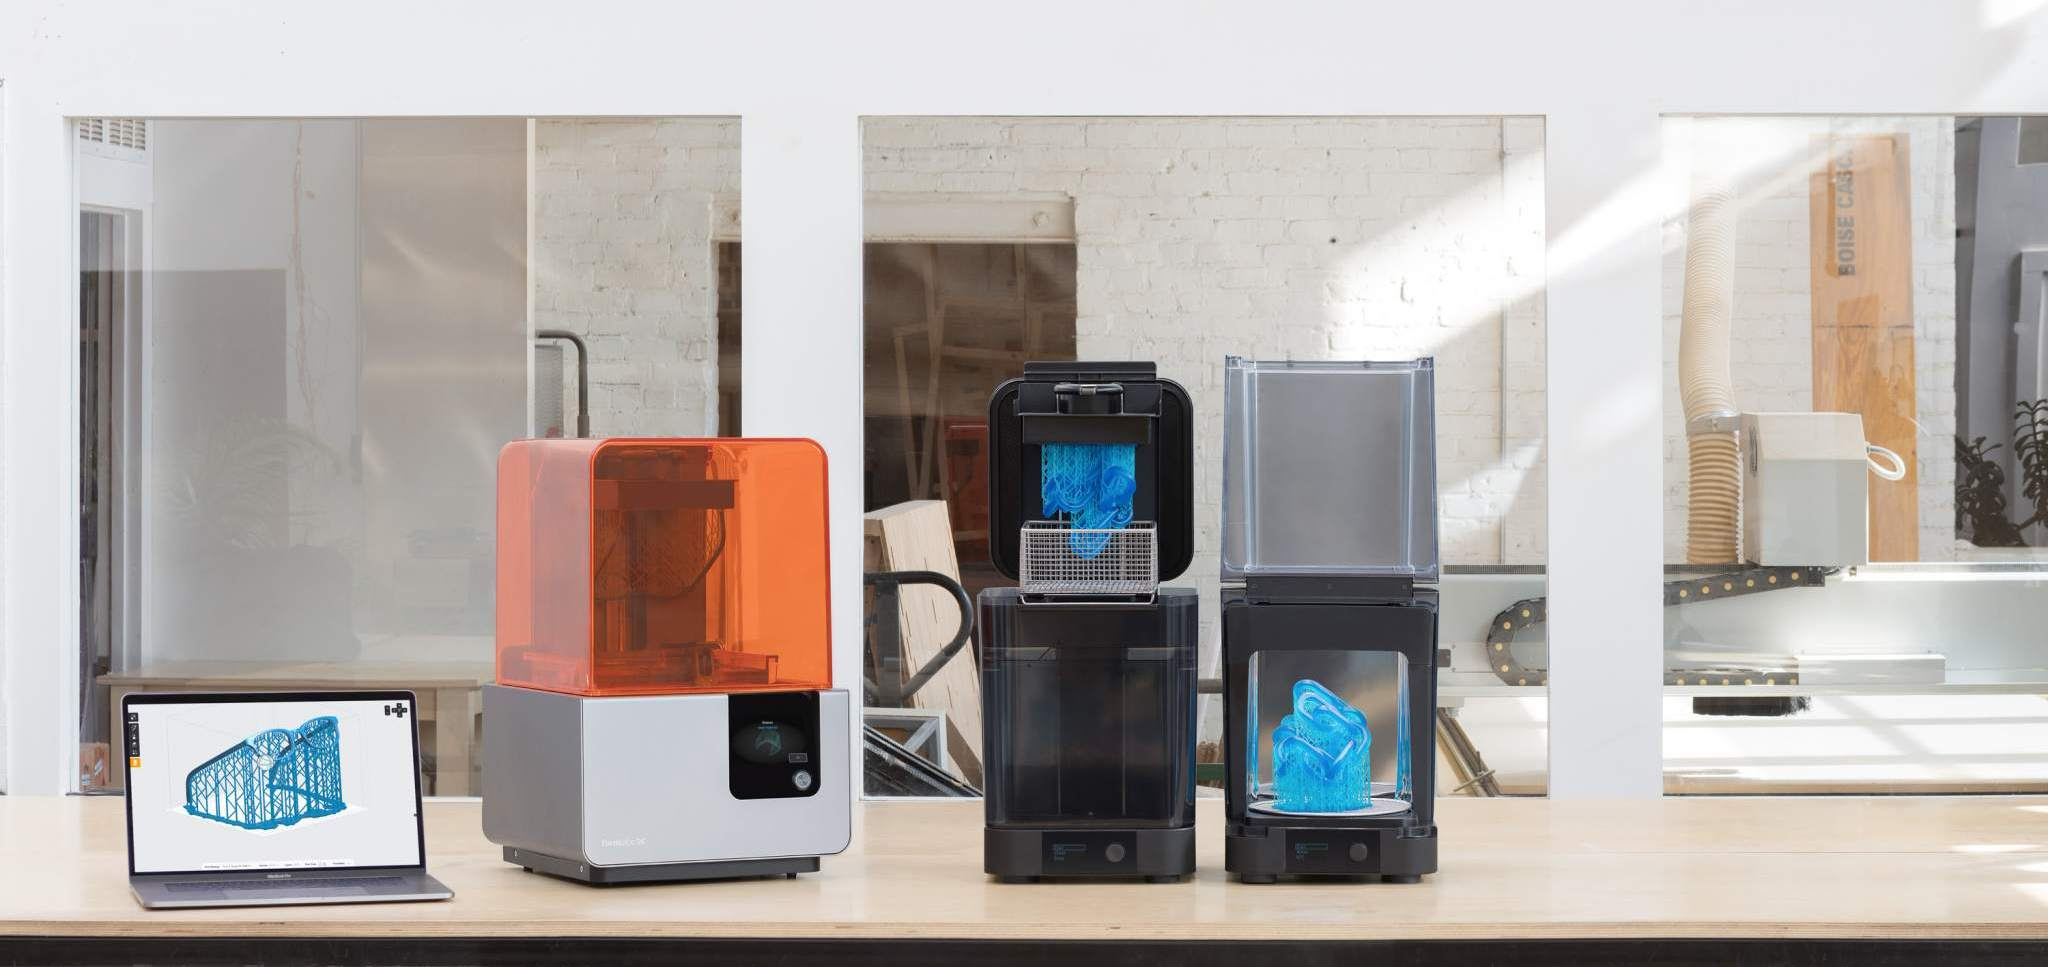 The updated workflow for the Form 2. Image via Formlabs.